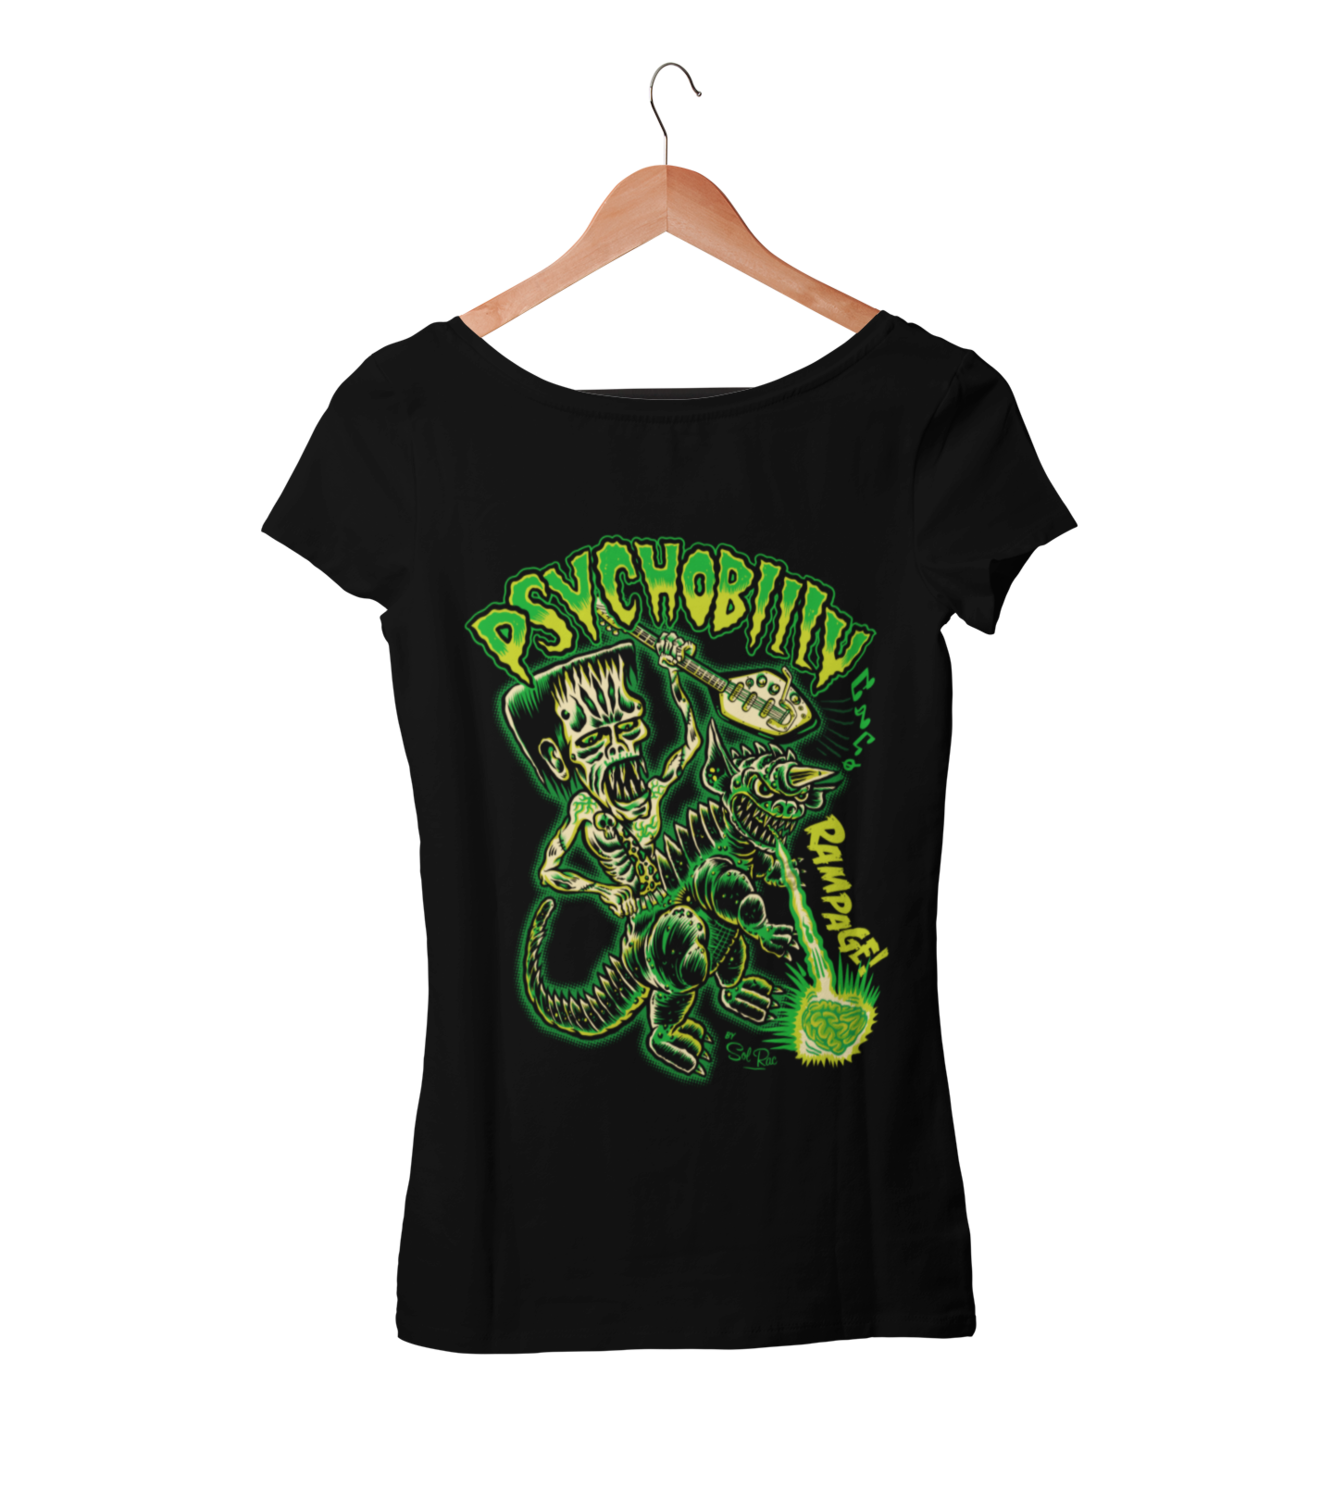 PSYCHOBILLY RAMPAGE T-SHIRT WOMAN BY SOL RAC